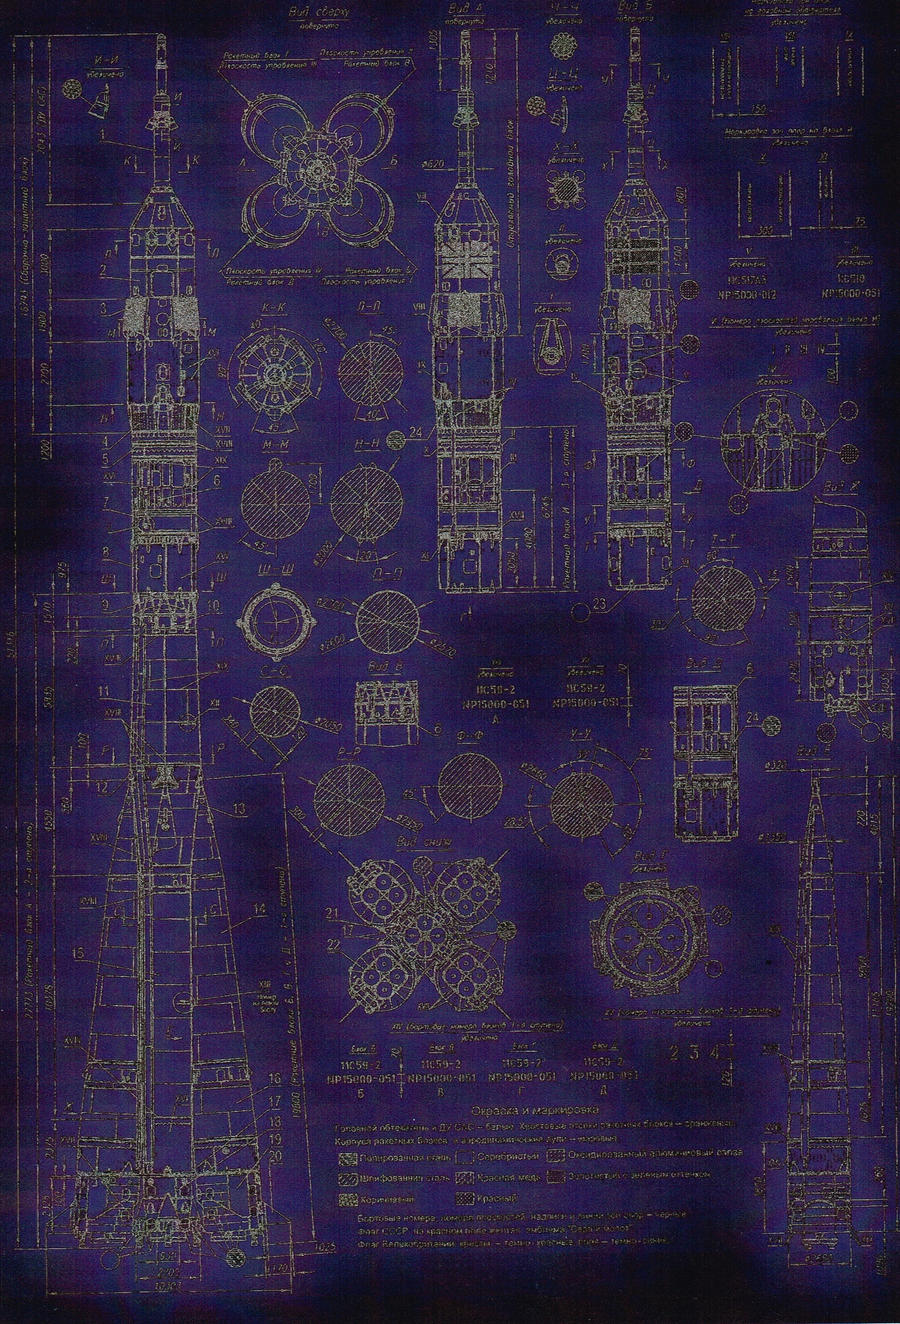 Original R-7 Schematics Poster by ShadowSpetsnaz